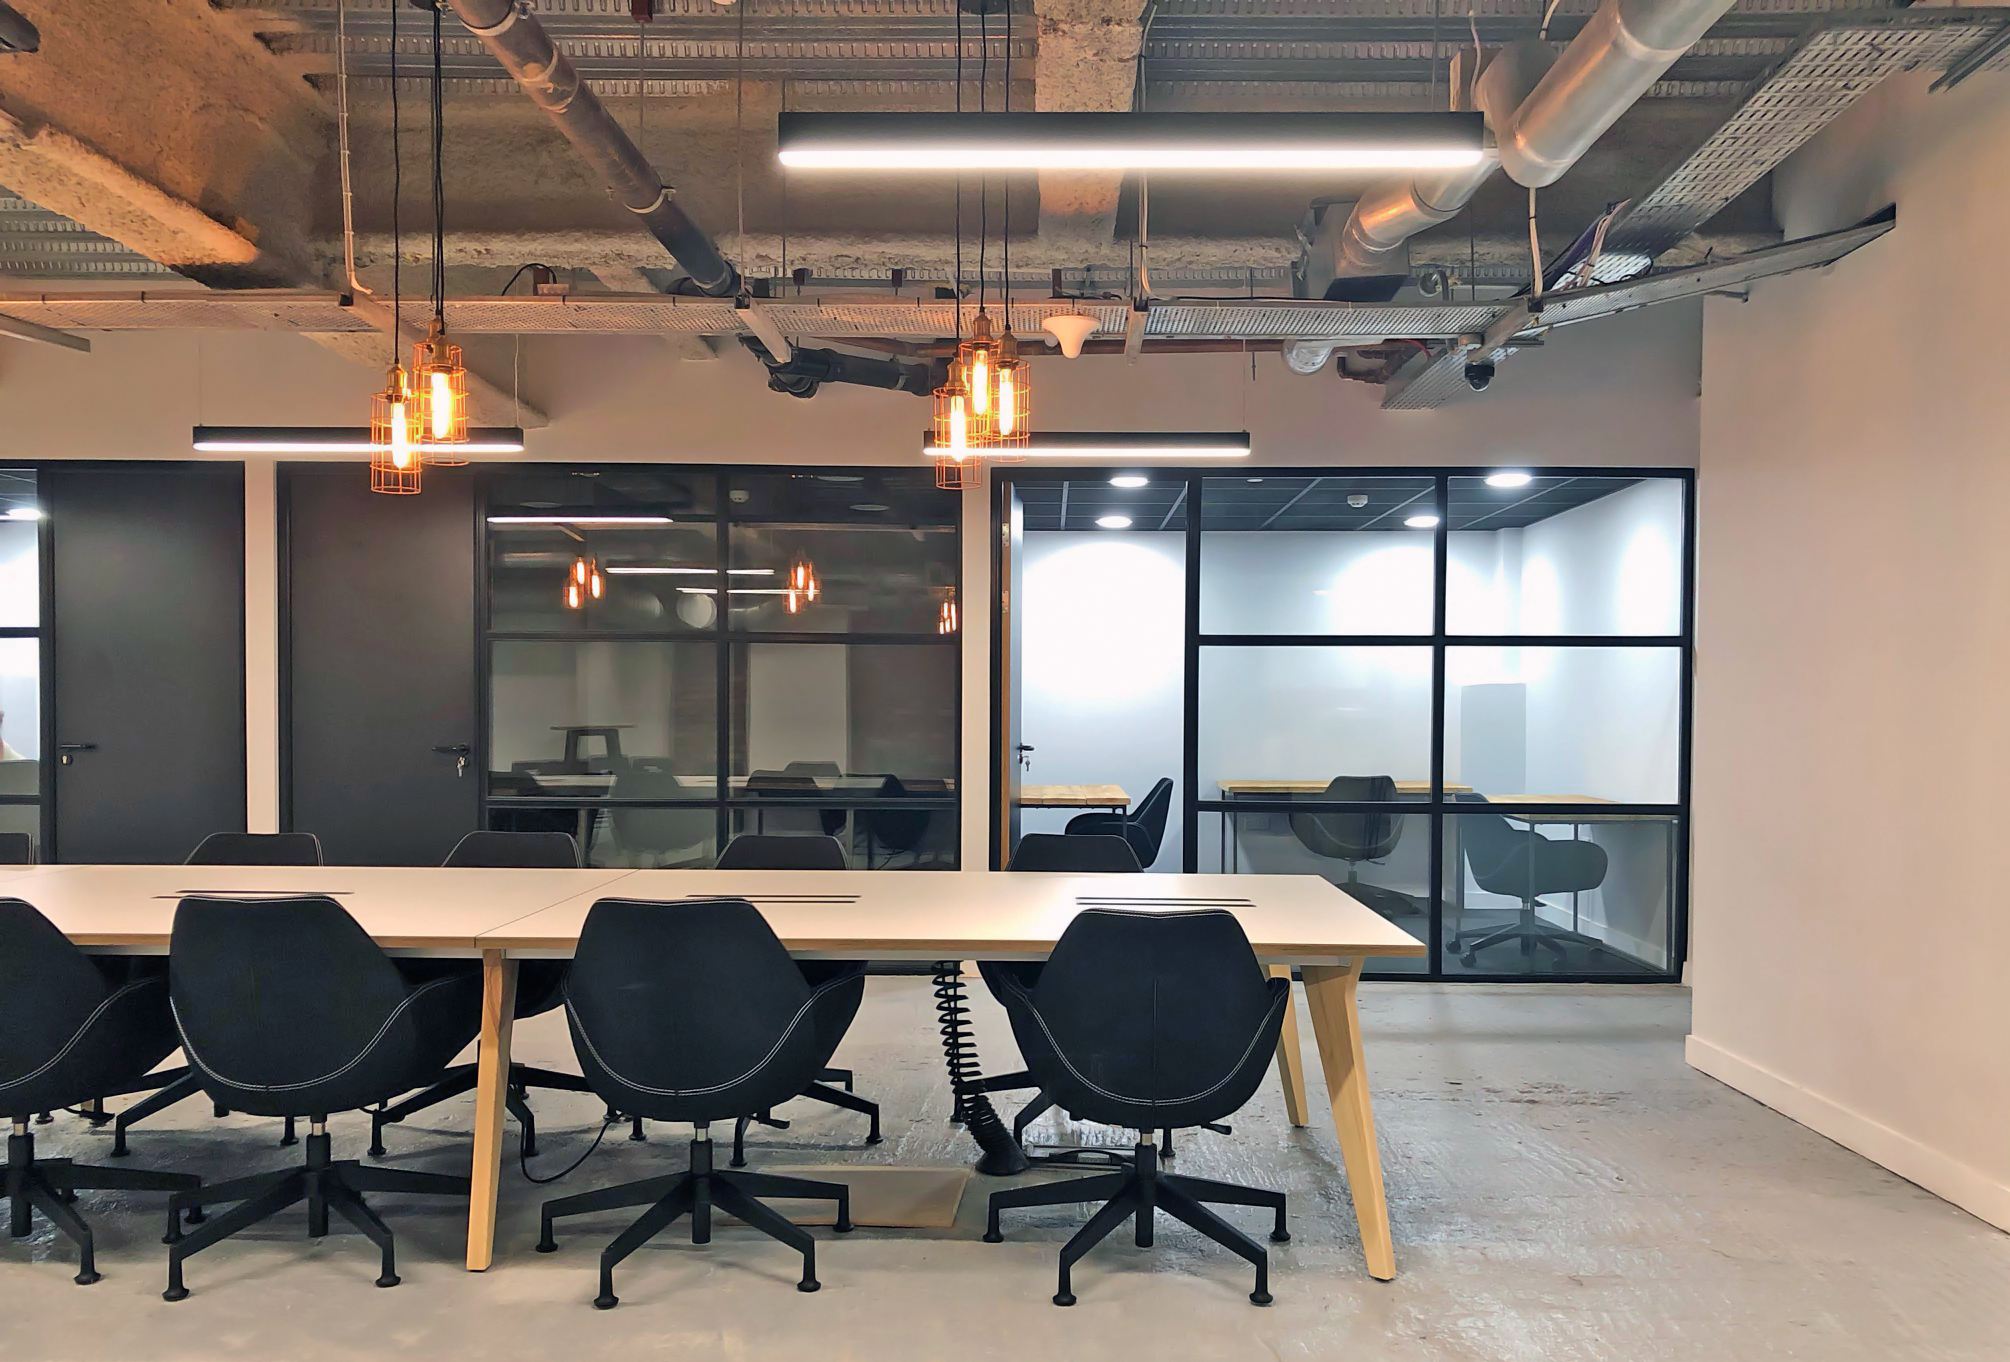 Virtual office Bournemouth, Virtual office Exeter, Serviced office Bournemouth, Serviced office Exeter, Coworking Exeter